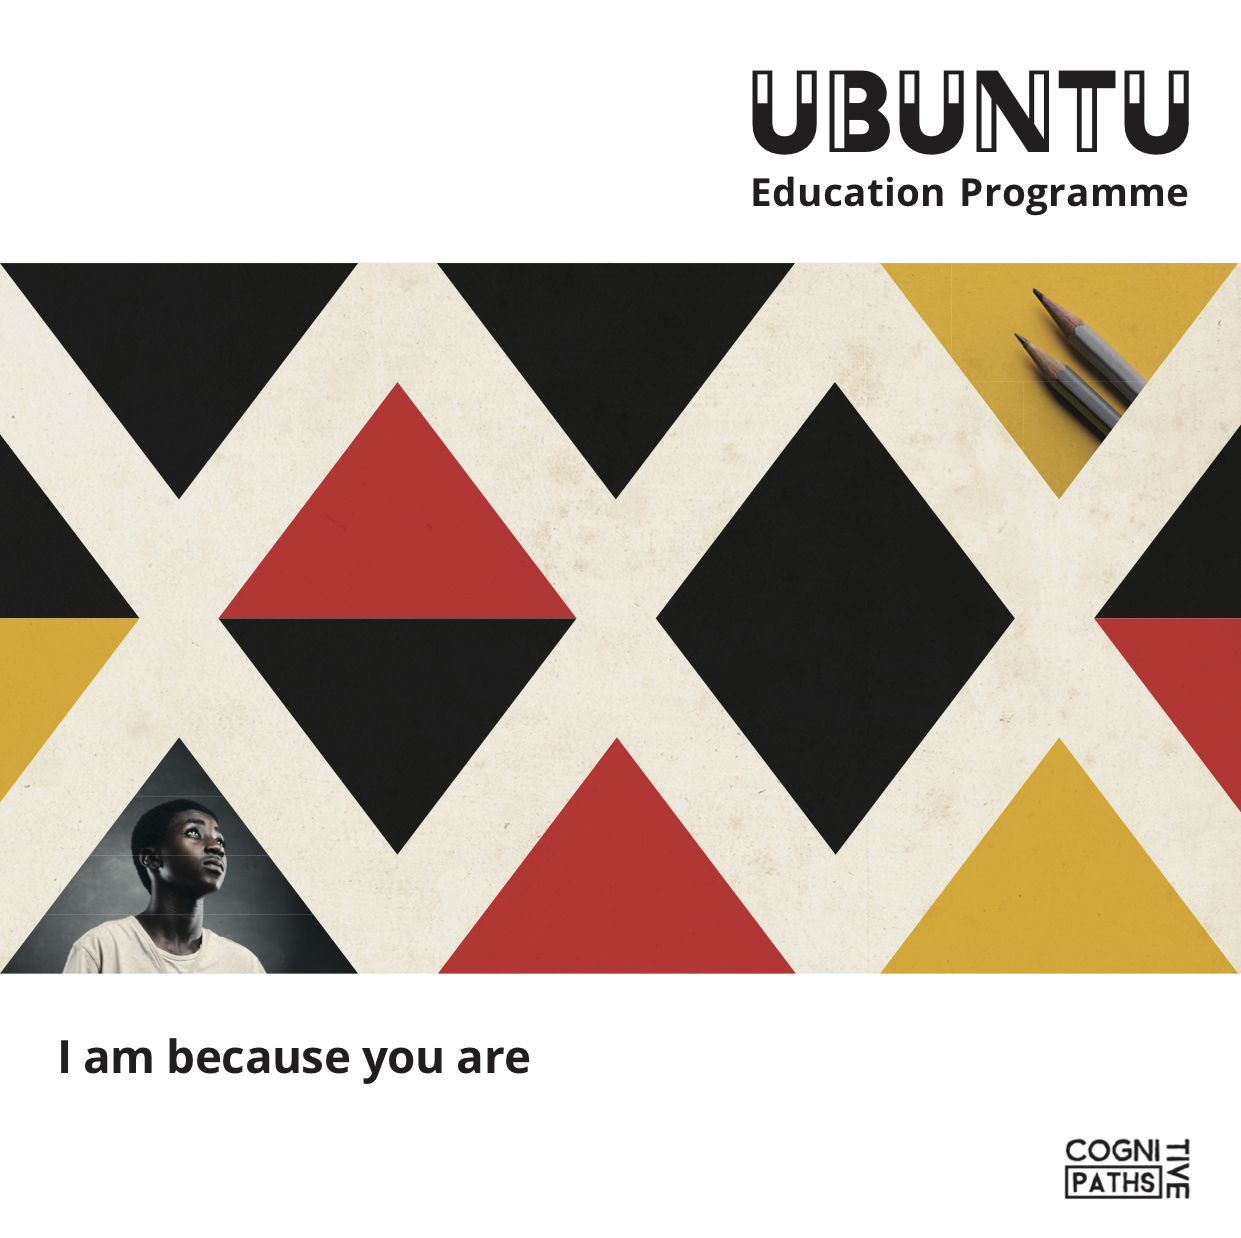 Ubuntu Education Programme